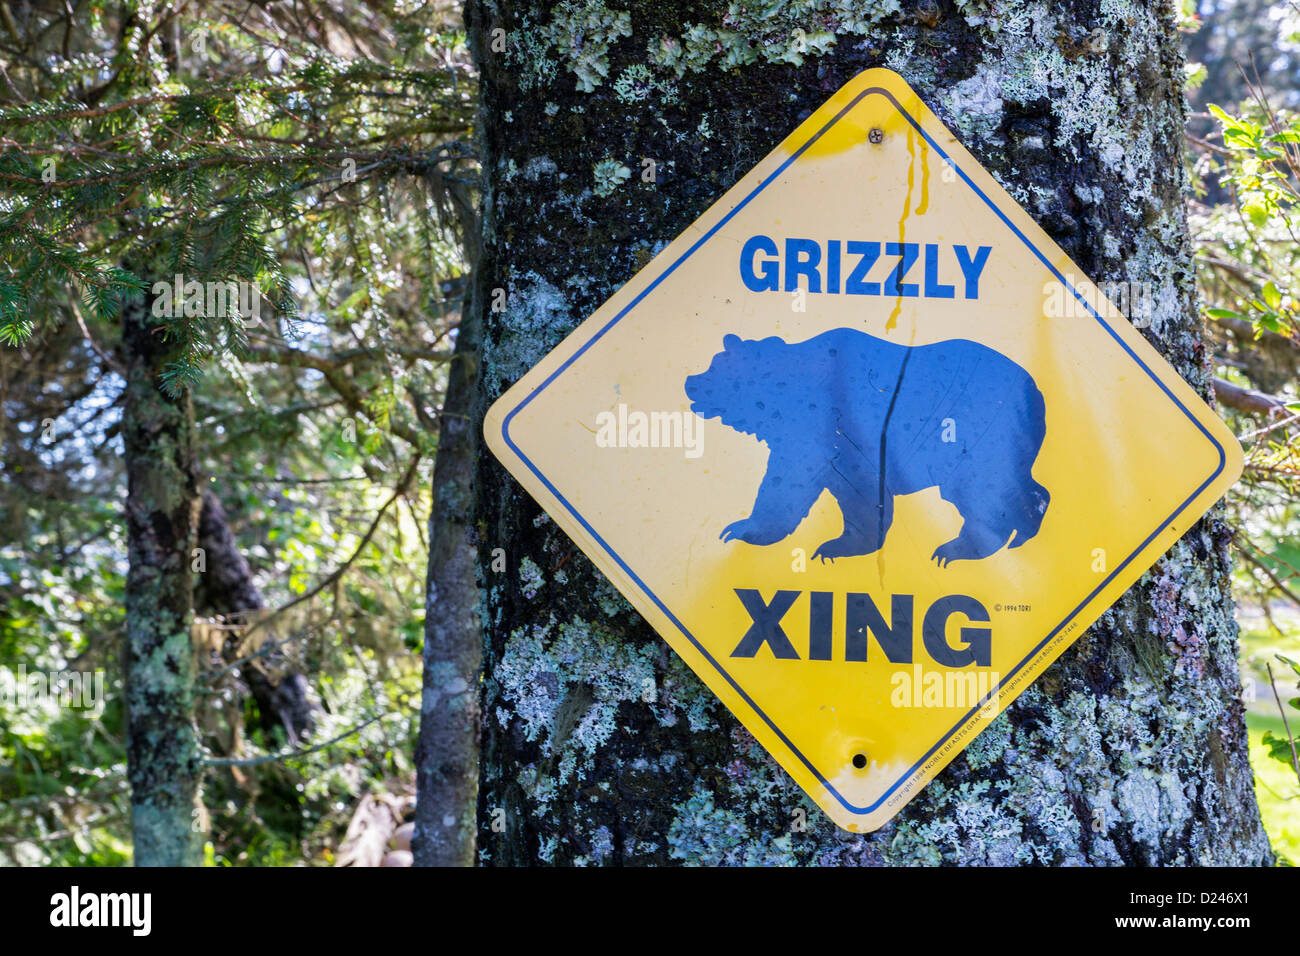 USA, Alaska, Grizzly Xing Sign on tree trunk at Lake Clark National Park and Preserve - Stock Image